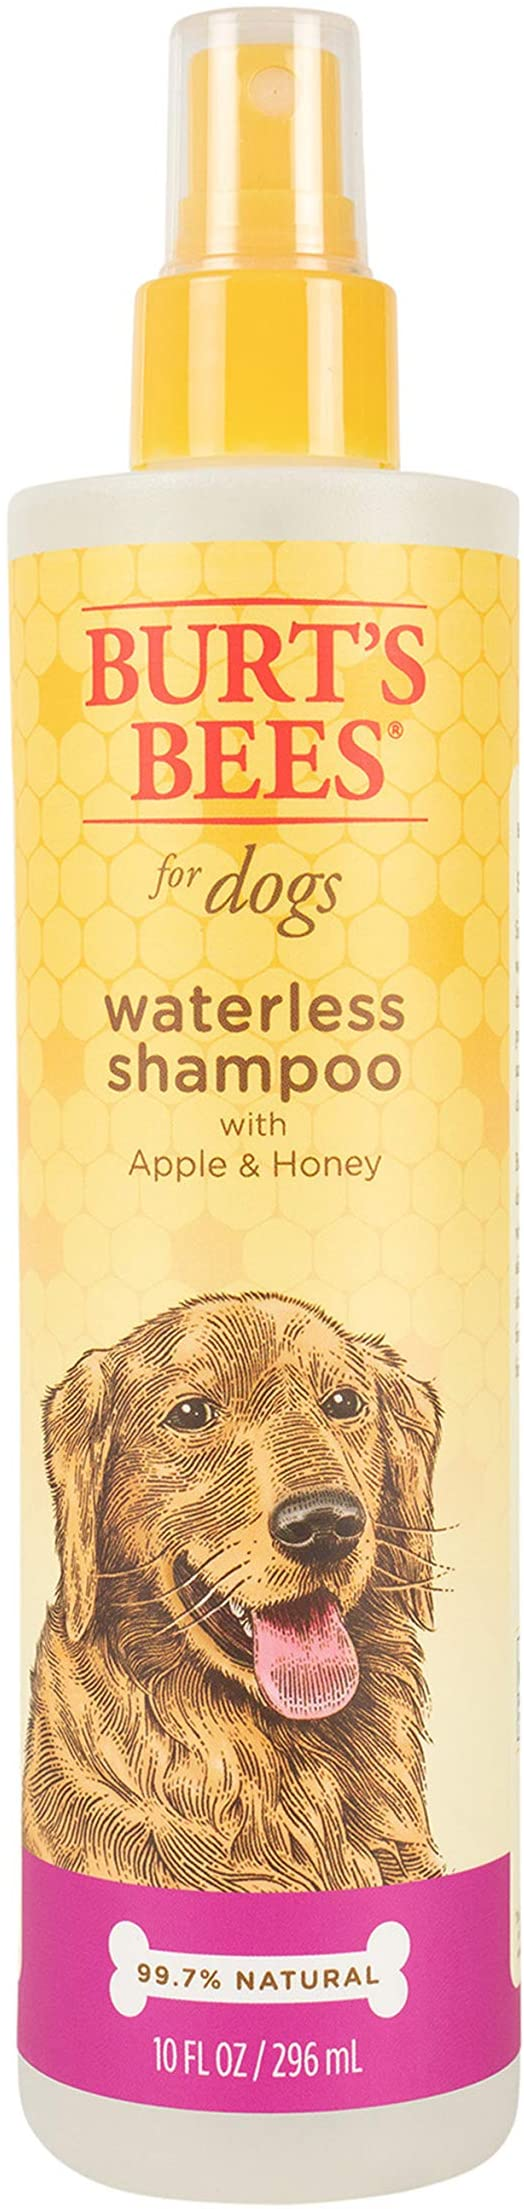 Pet Shampoos Amazon Com Burt S Bees For Dogs Natural Waterless Shampoo Spray With Apple And Honey Puppy And Do Dog Spray Waterless Shampoo Dry Dog Shampoo